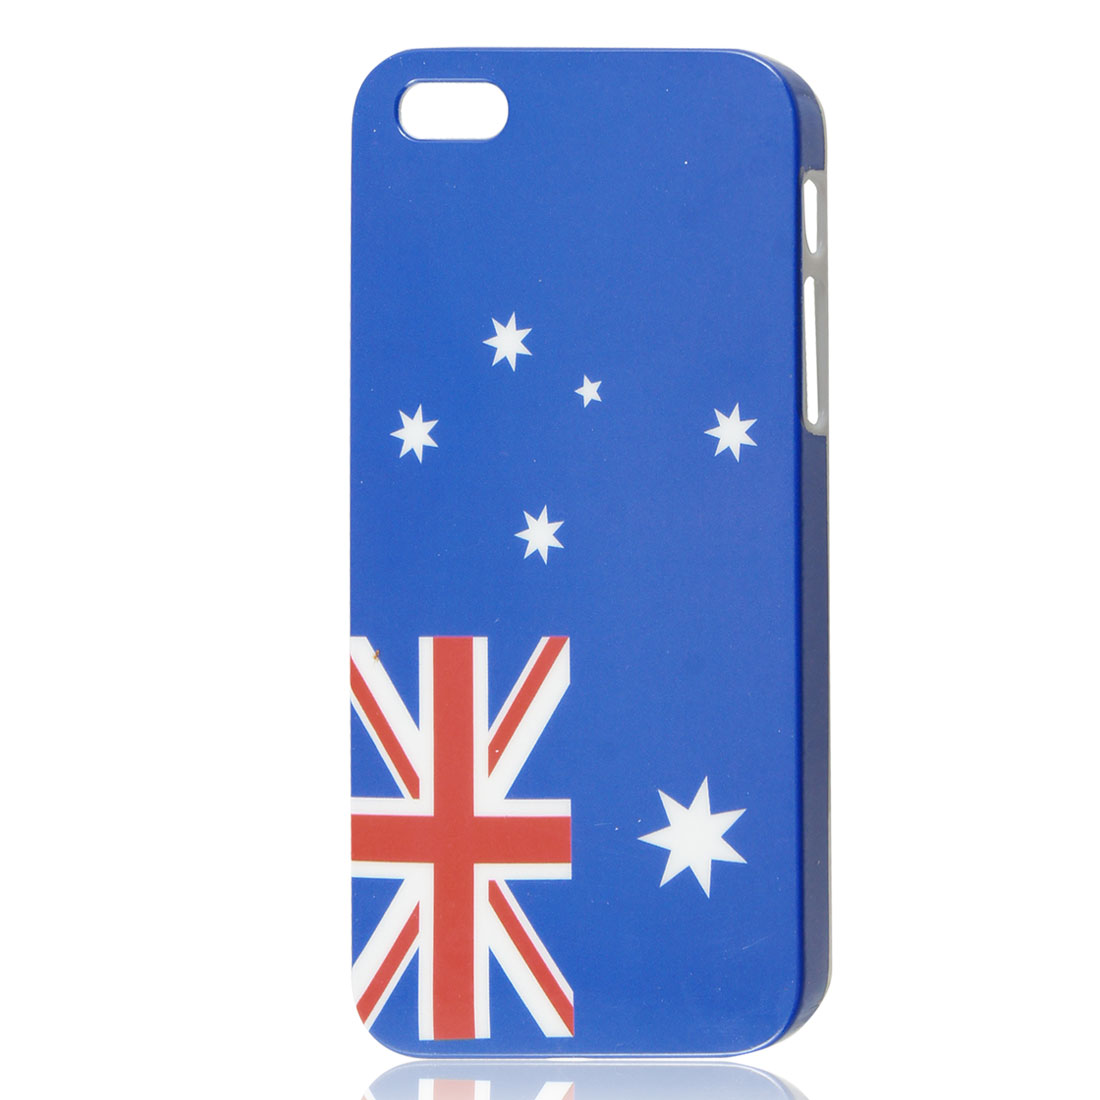 UK British Flag Star Design IMD Hard Back Case Cover for iPhone 5 5G